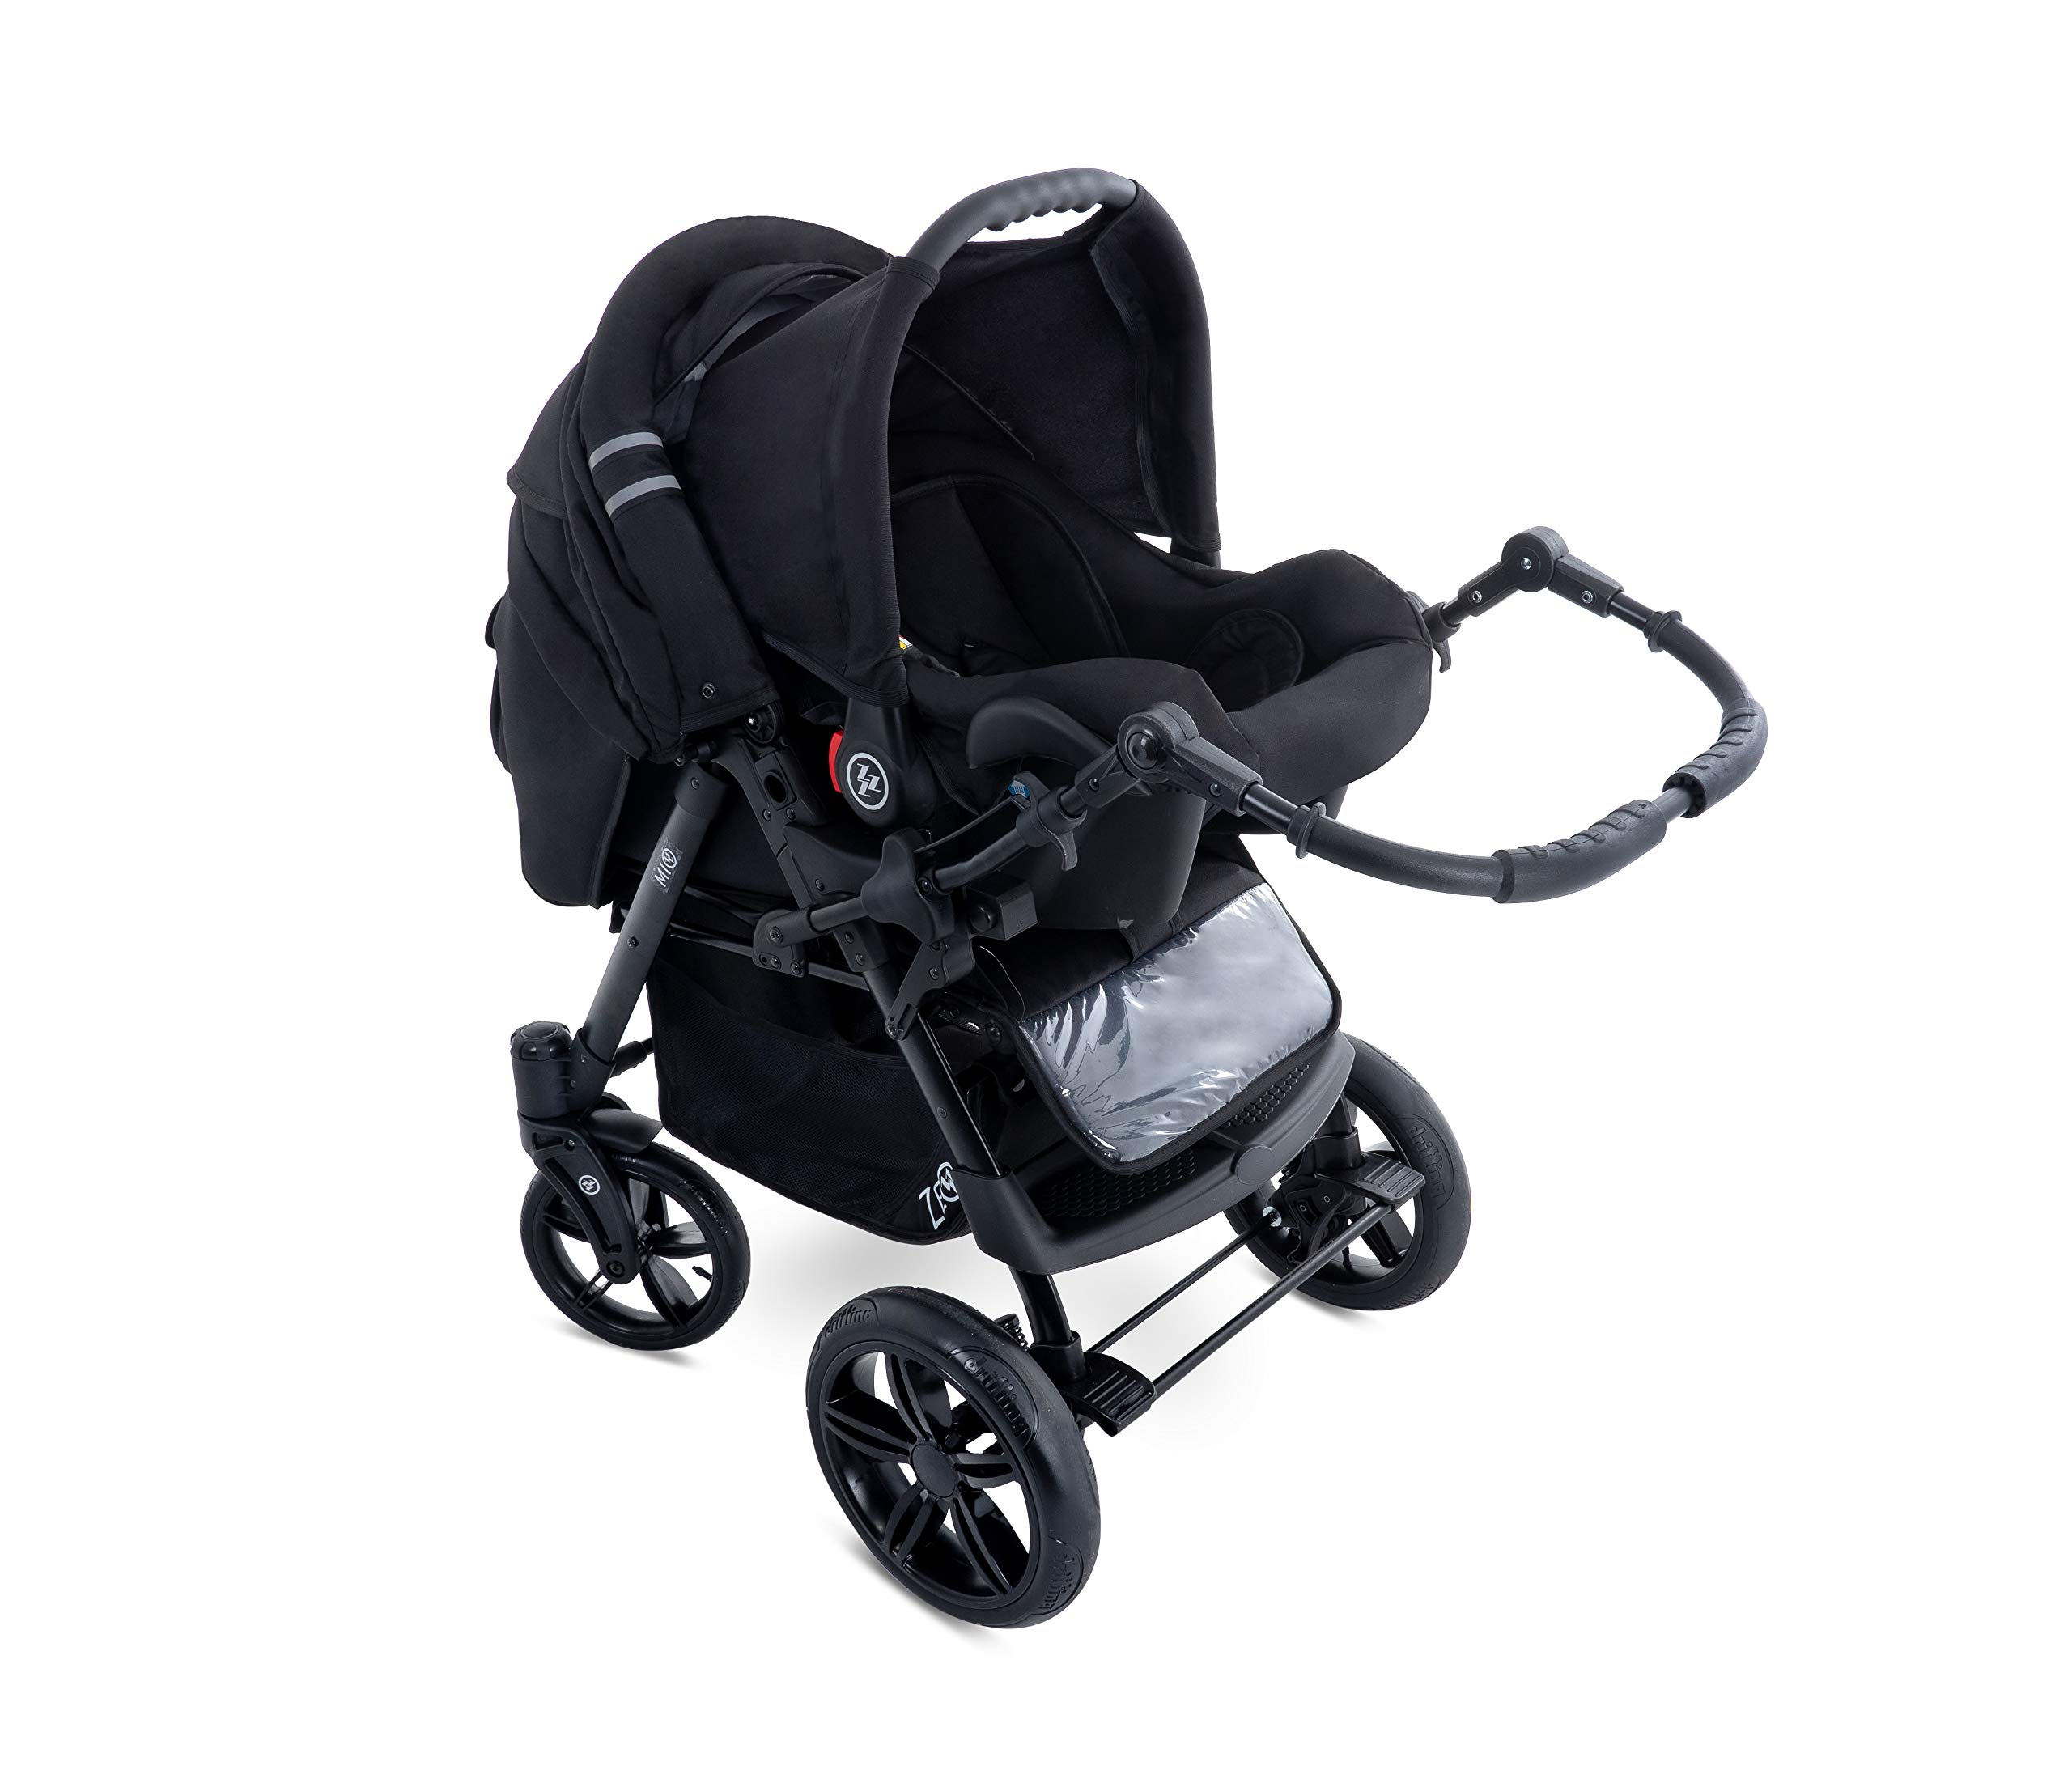 Baby Pram Zeo Mio 3in1 Set - All You Need! carrycot Gondola Buggy Sport Part Pushchair car seat (M1)  3 in 1 combination stroller complete set, with reversible handle to the buggy, child car seat or baby carriage Has 360 ° swiveling wheels, two-fold suspension, four-stage backrest, five-position adjustable footrest and a five-point safety belt The stroller can be easily converted into other functions and easy to transport 6